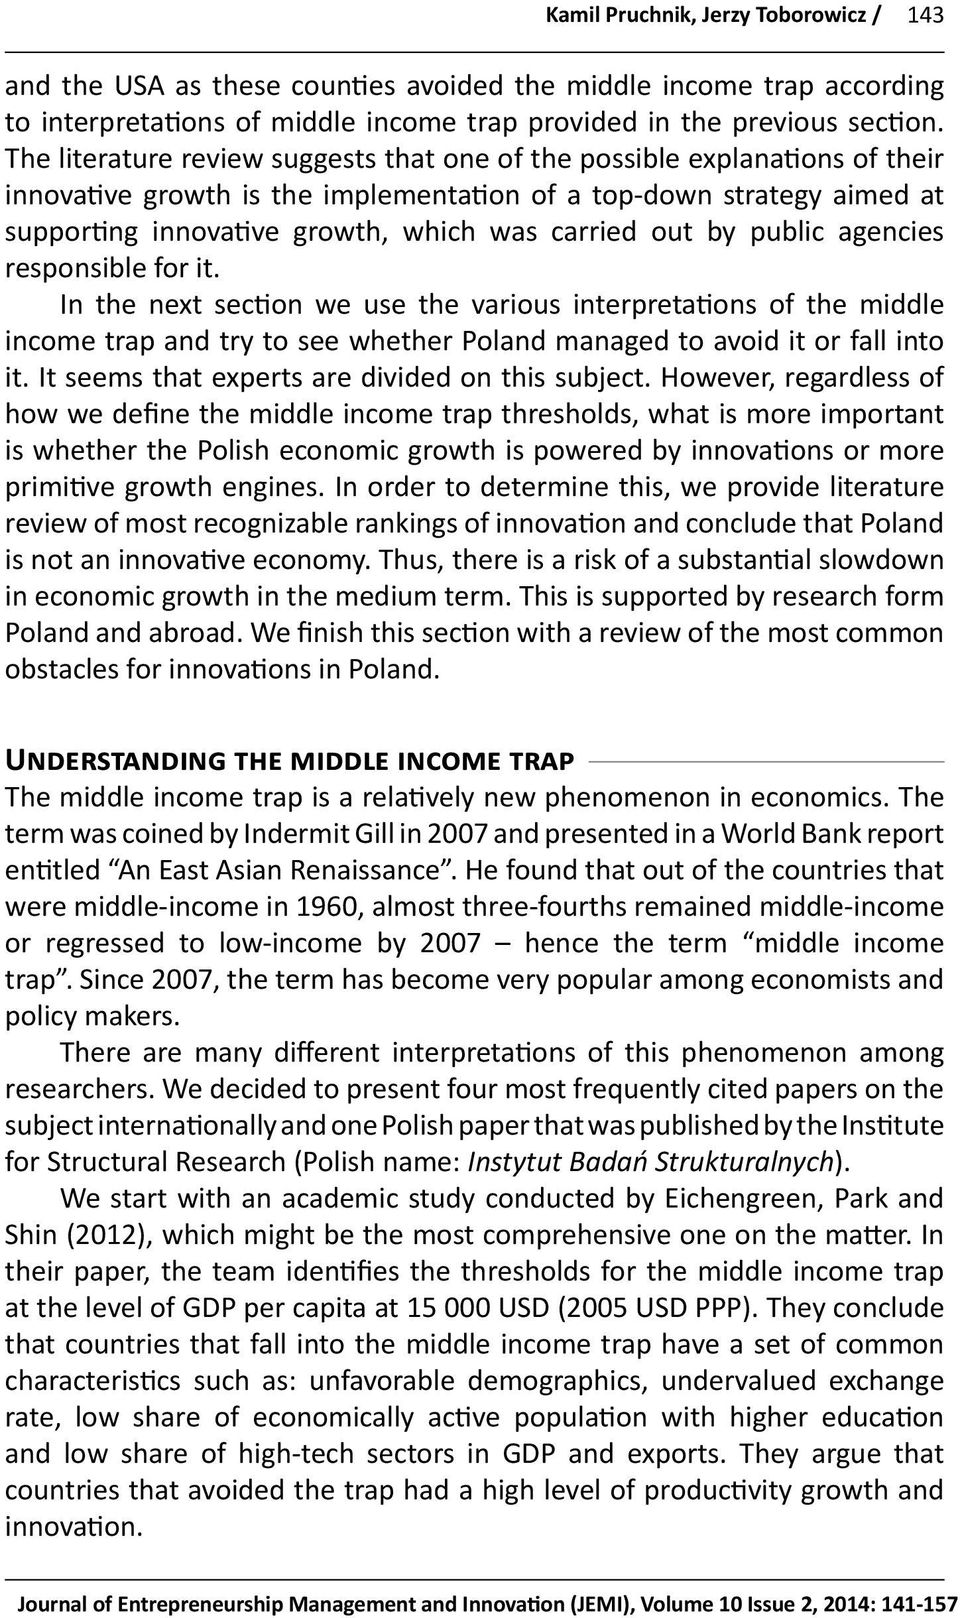 out by public agencies responsible for it. In the next section we use the various interpretations of the middle income trap and try to see whether Poland managed to avoid it or fall into it.